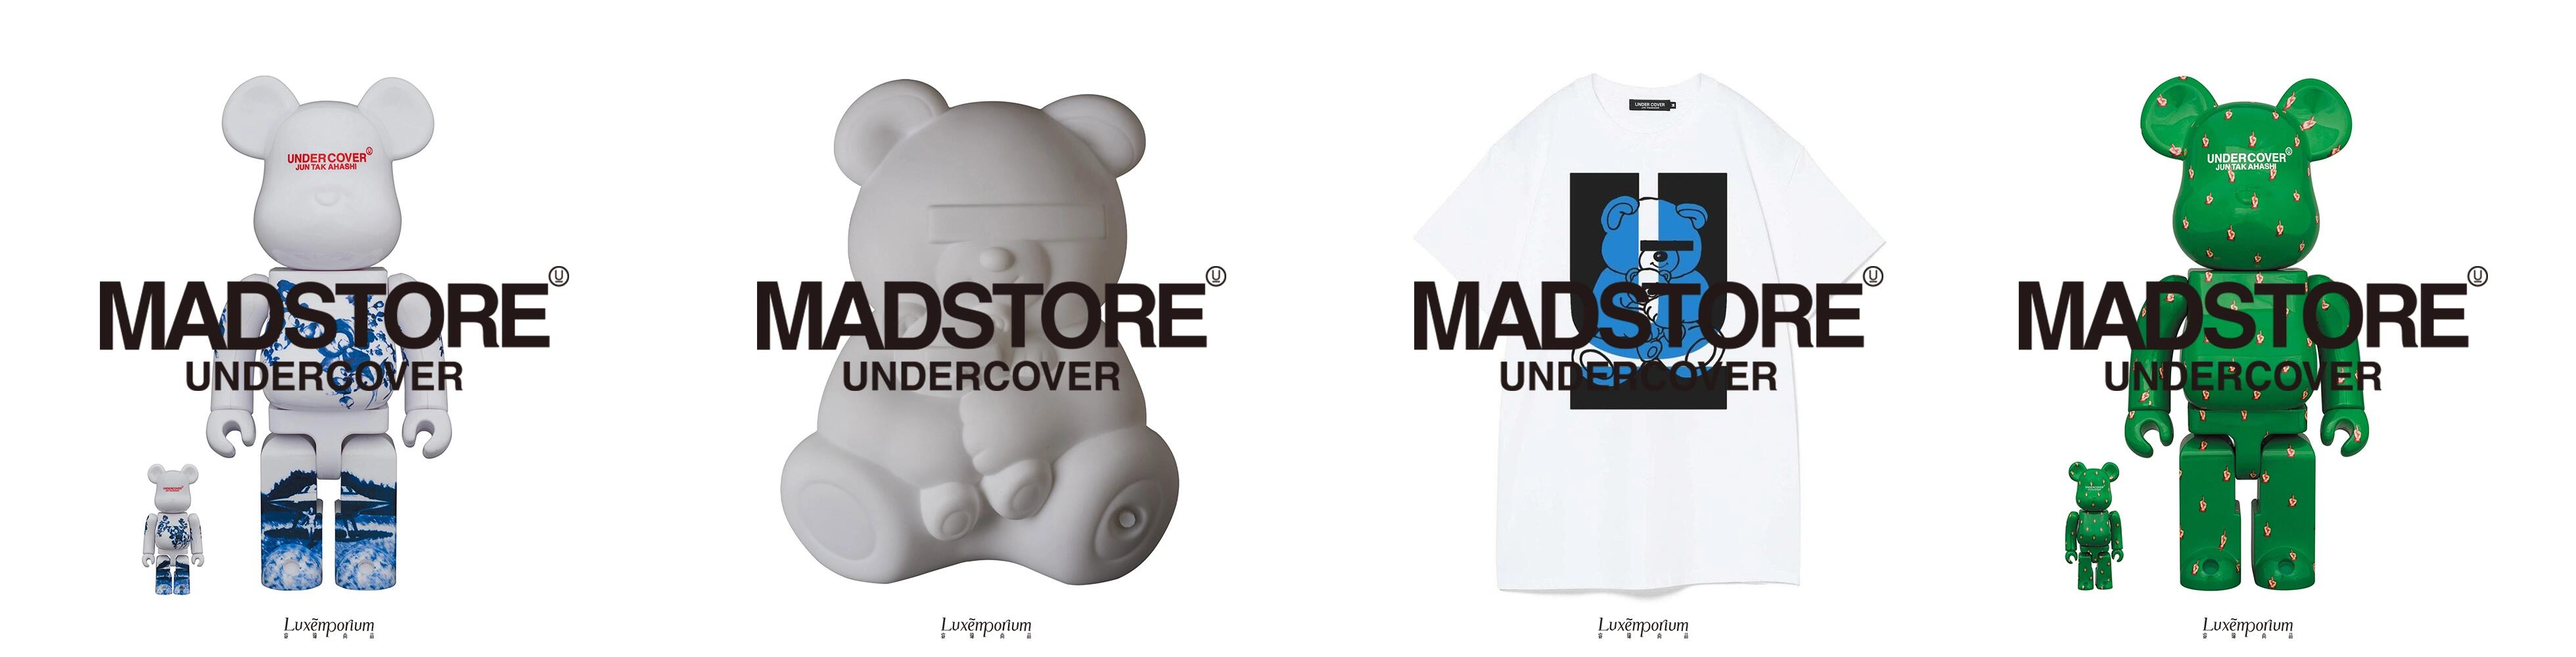 MADSTORE UNDERCOVER 登陆成都